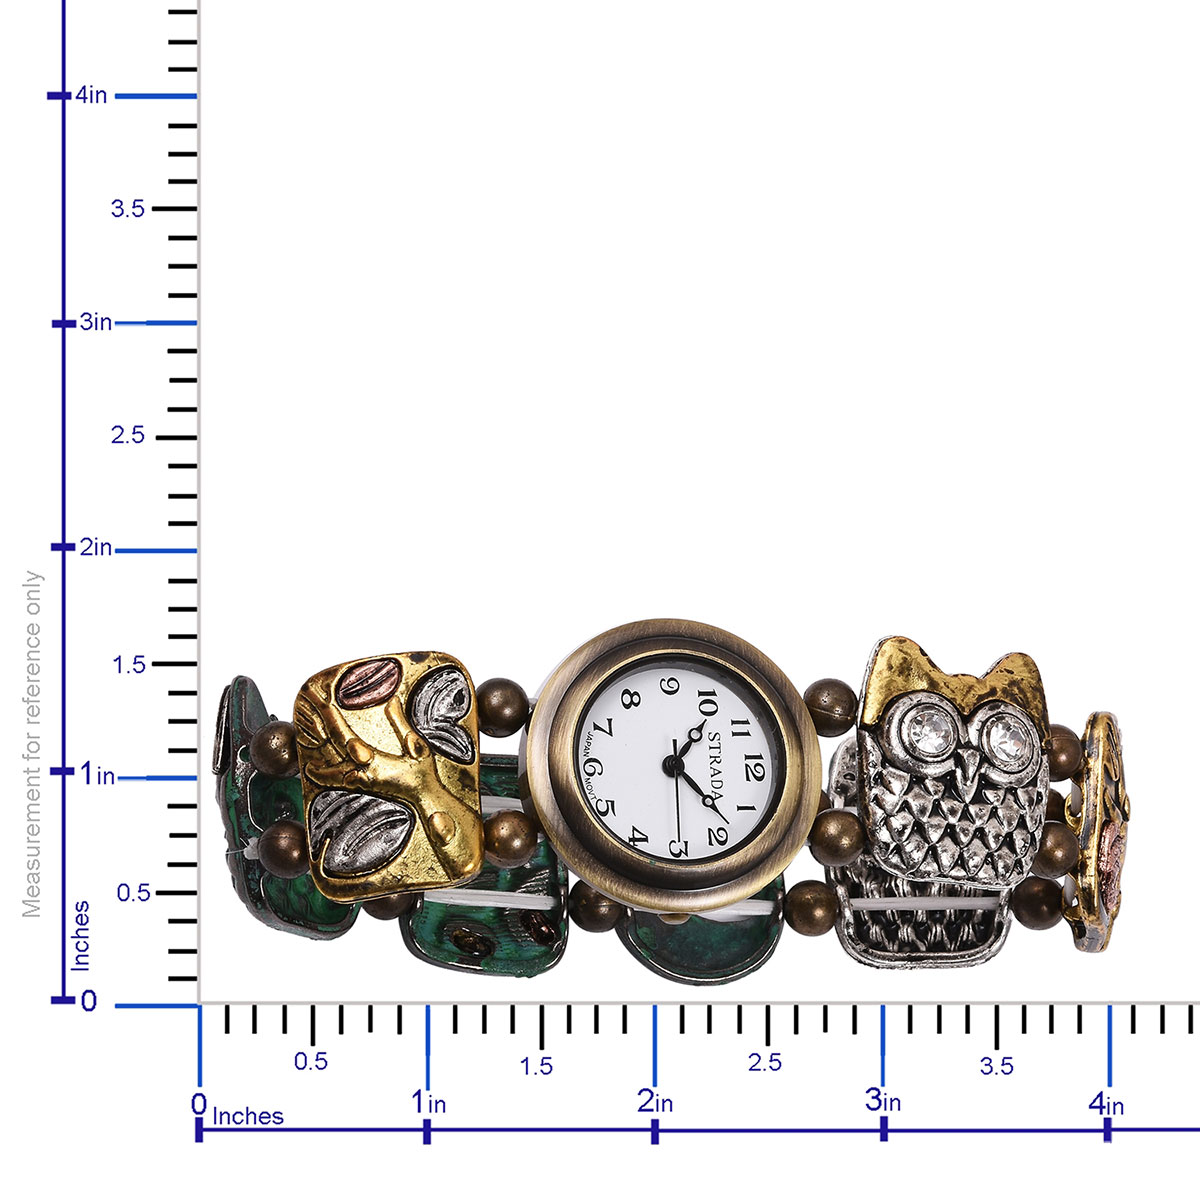 808c270ed ... STRADA Austrian Crystal Japanese Movement Water Resistant Enameled  Bracelet Watch (Stretchable) in Multitone and